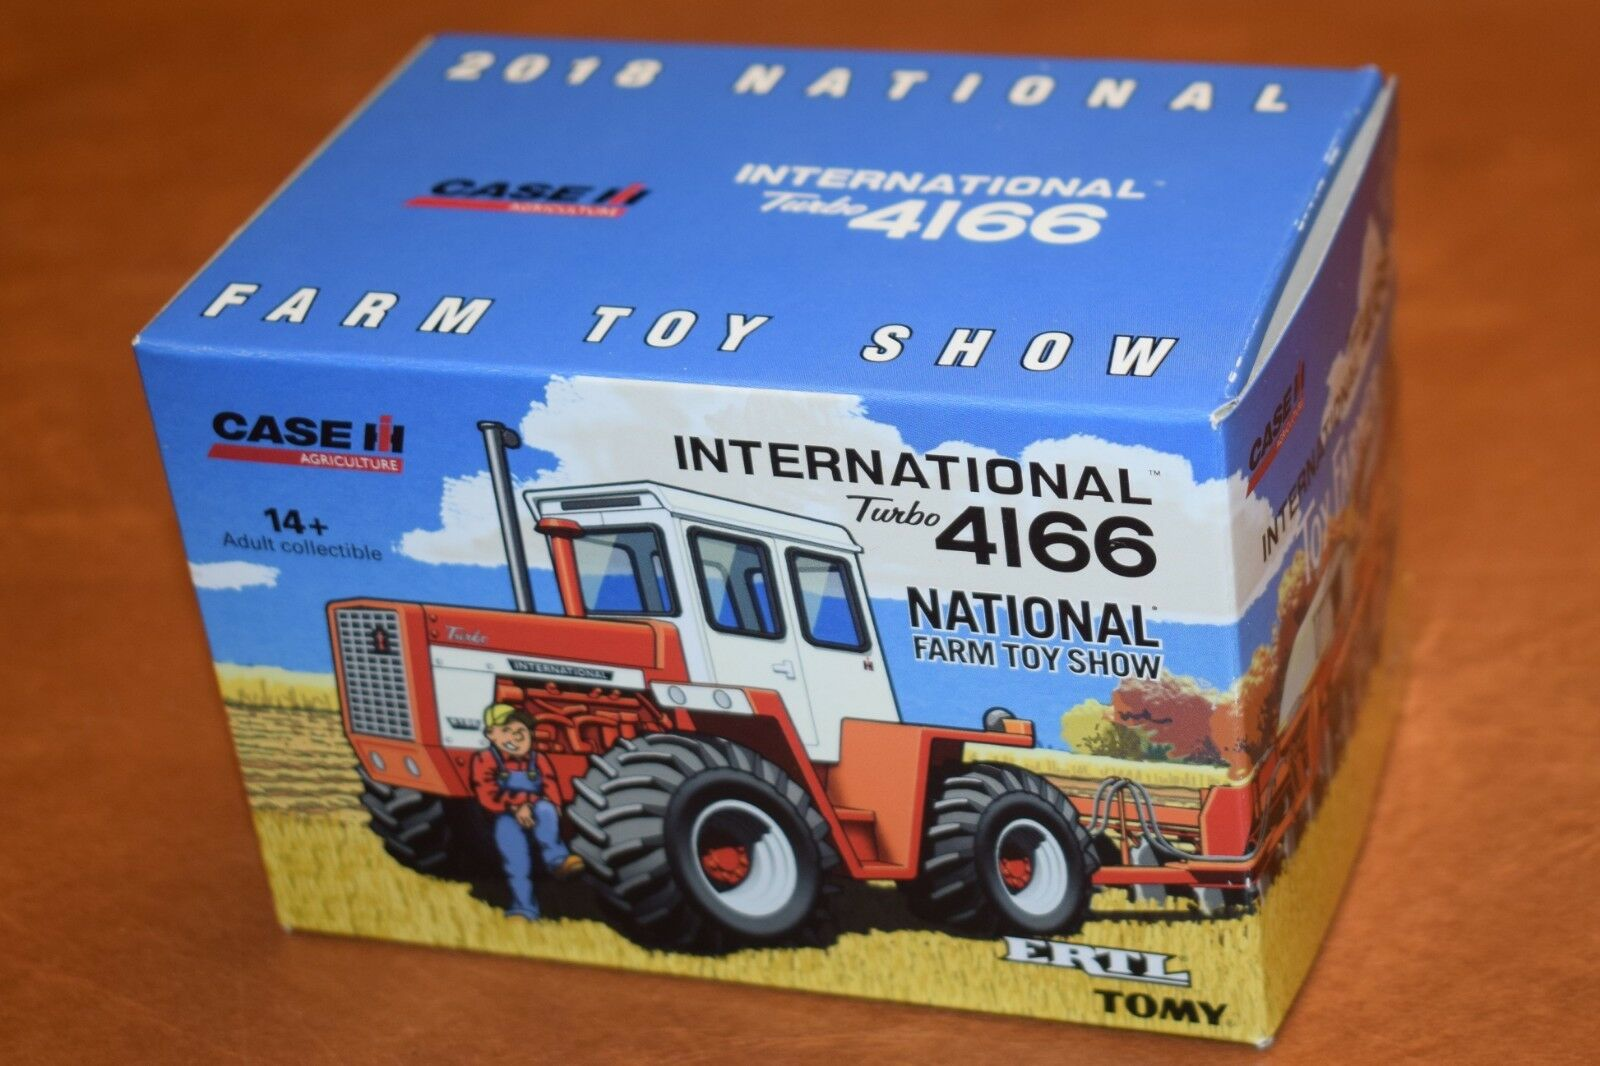 1/64 Ertl 2018 National Farm Toy Show 4166 INTERNATIONAL Tractor